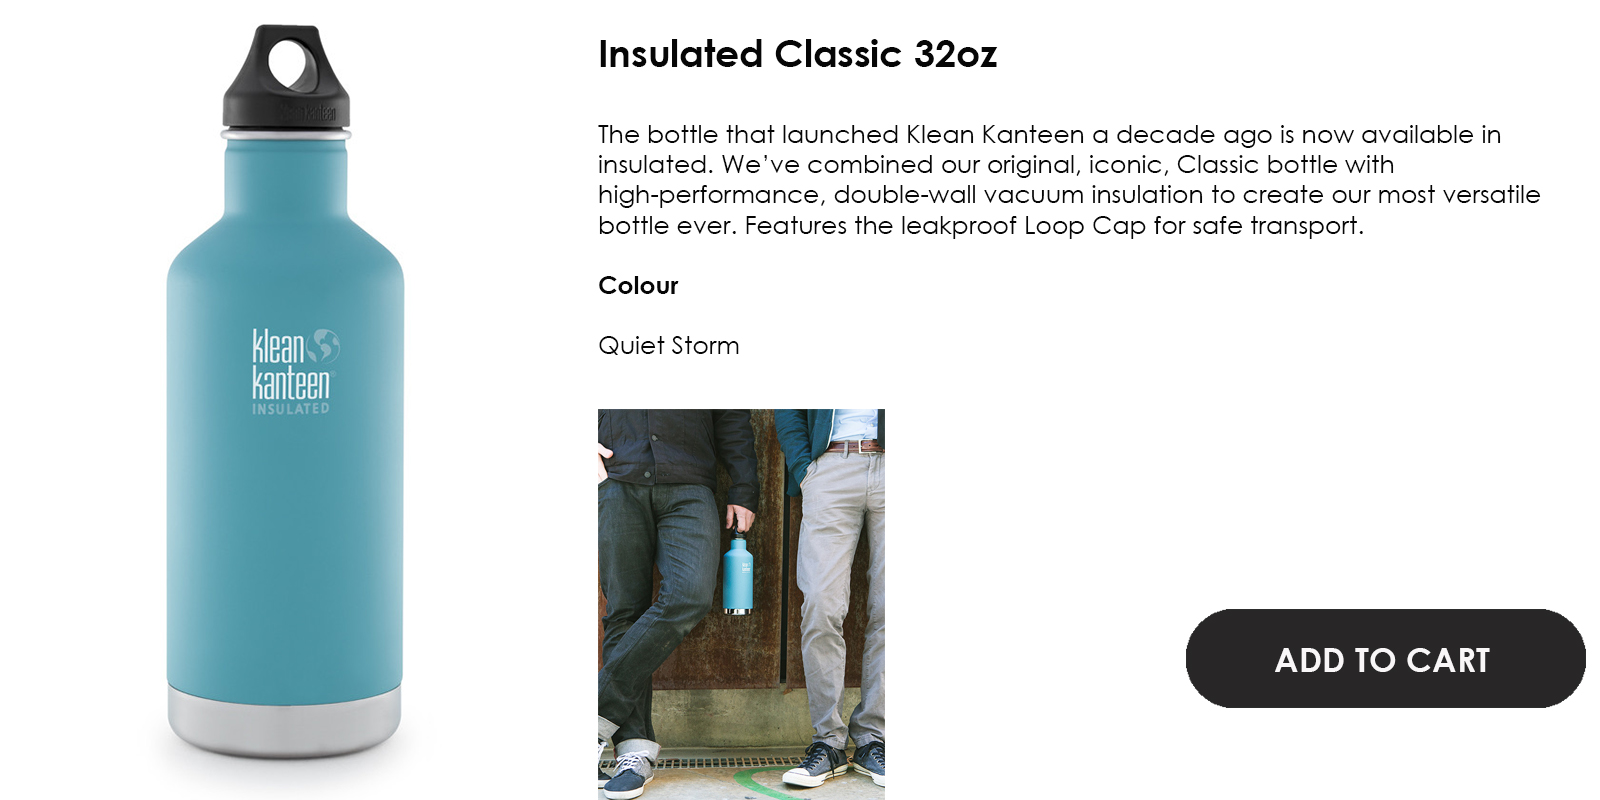 aabd3aa0ed 32oz Classic Insulated (Quiet Storm). $73.00. Qty: Product Details. image  image